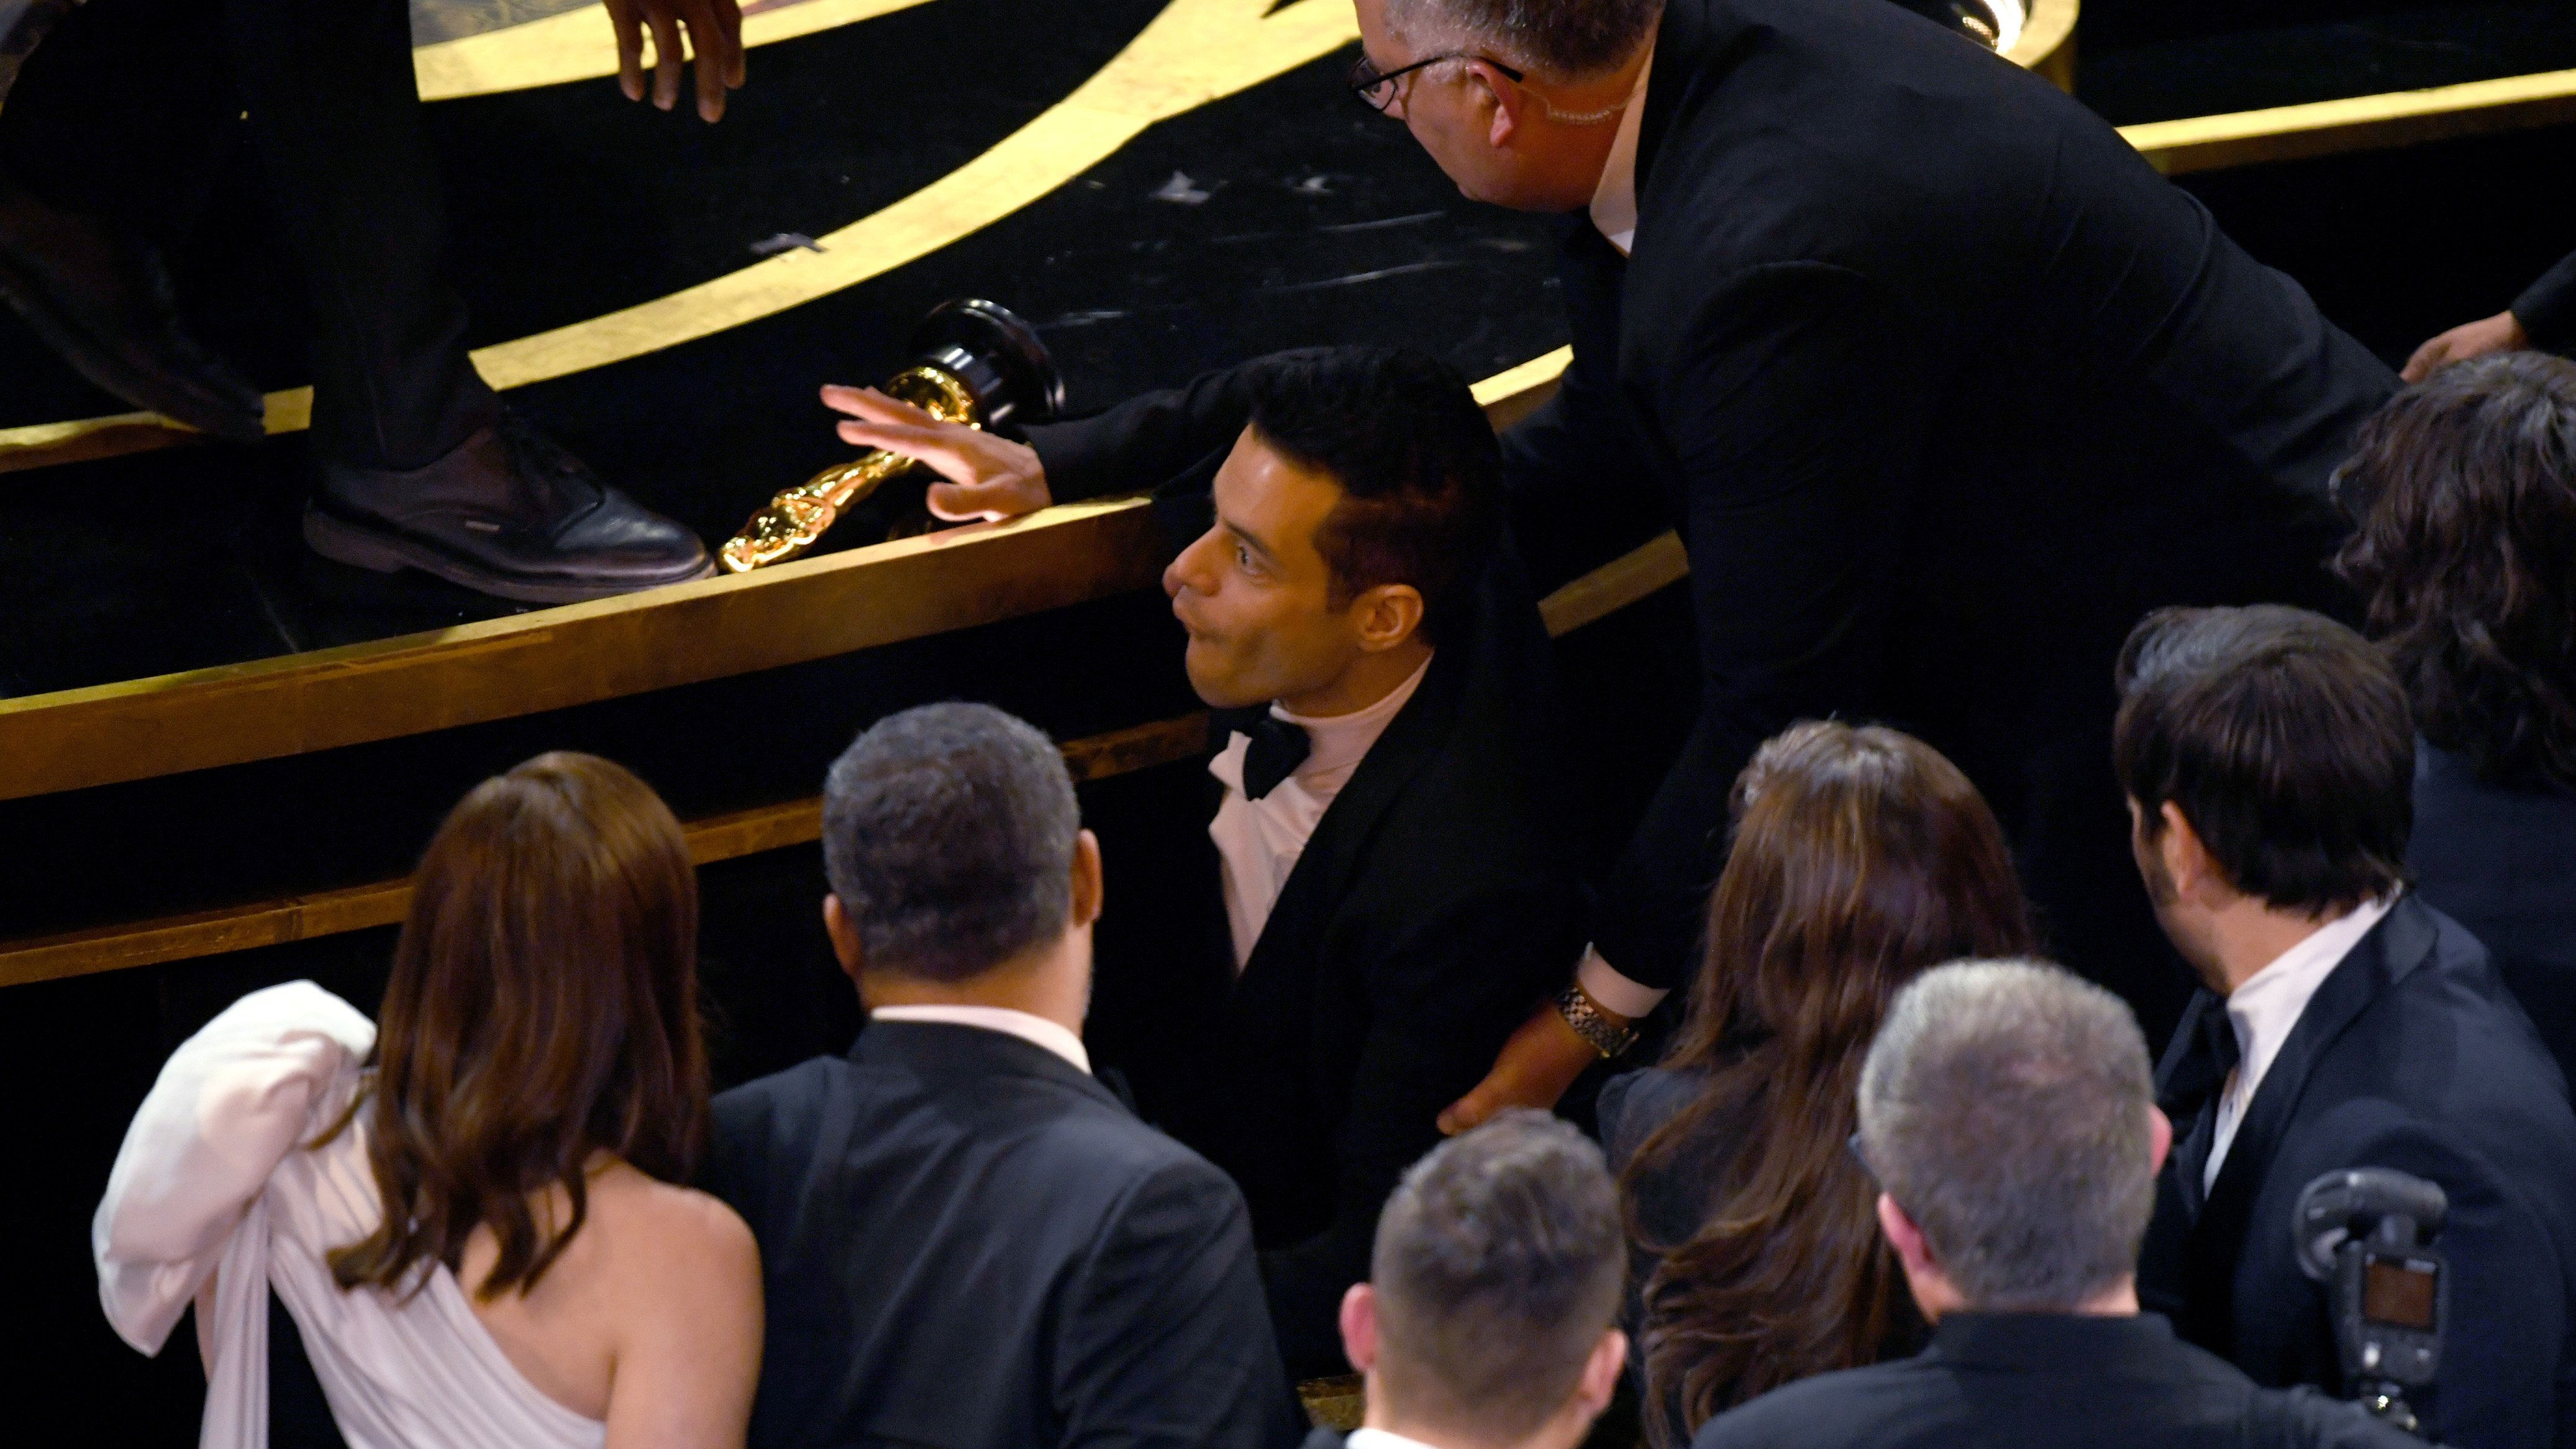 HOLLYWOOD, CALIFORNIA - FEBRUARY 24: (EDITORS NOTE: Retransmission with alternate crop.) Rami Malek attends the 91st Annual Academy Awards at Dolby Theatre on February 24, 2019 in Hollywood, California. (Photo by Kevin Winter/Getty Images)